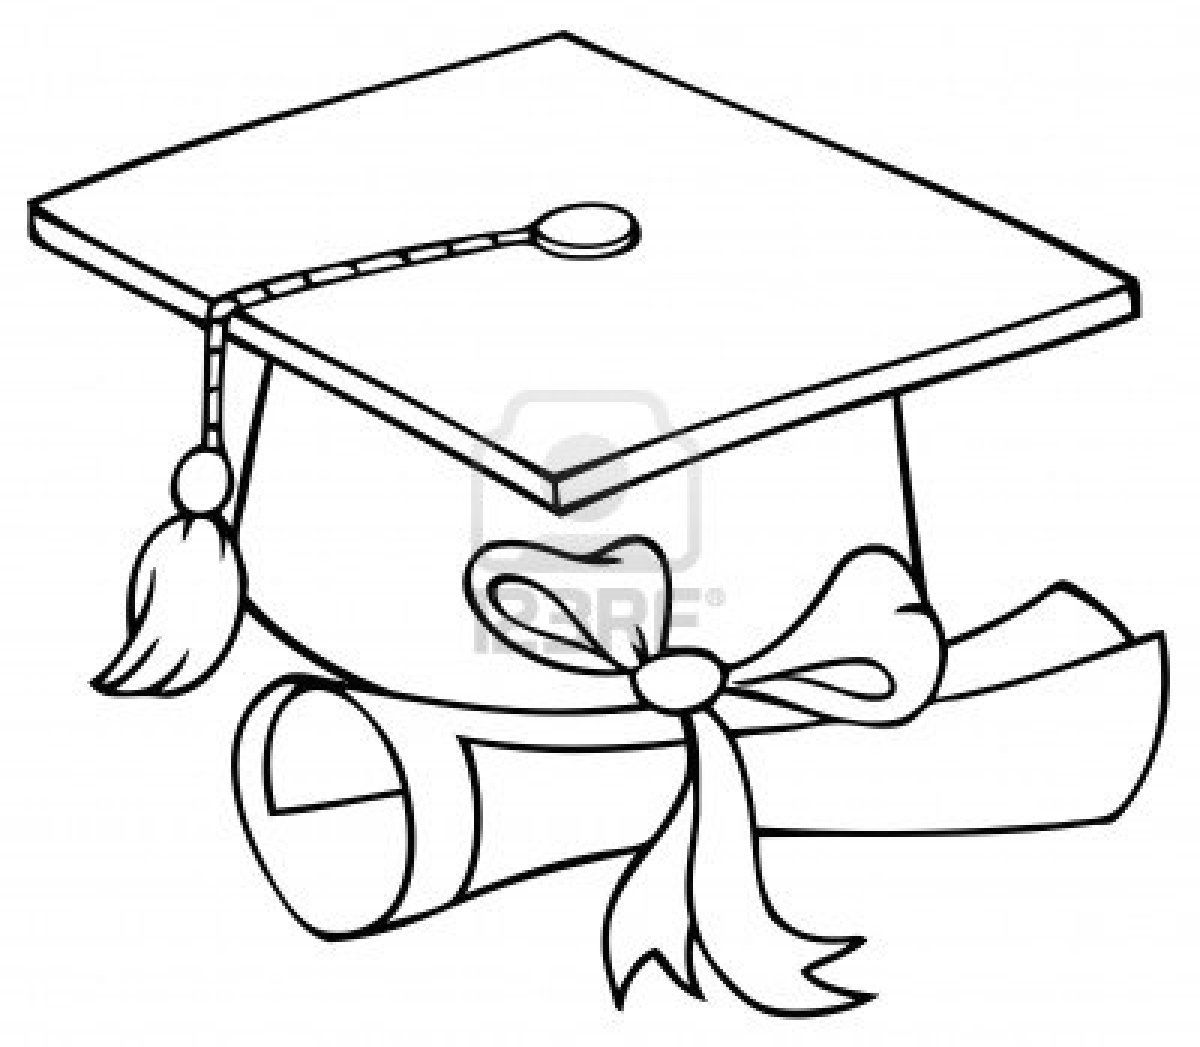 Free coloring pages graduation - Free Coloring Pages Graduation Royalty Free Rf Graduation Clipart By Hit Toon Stock Sample Download